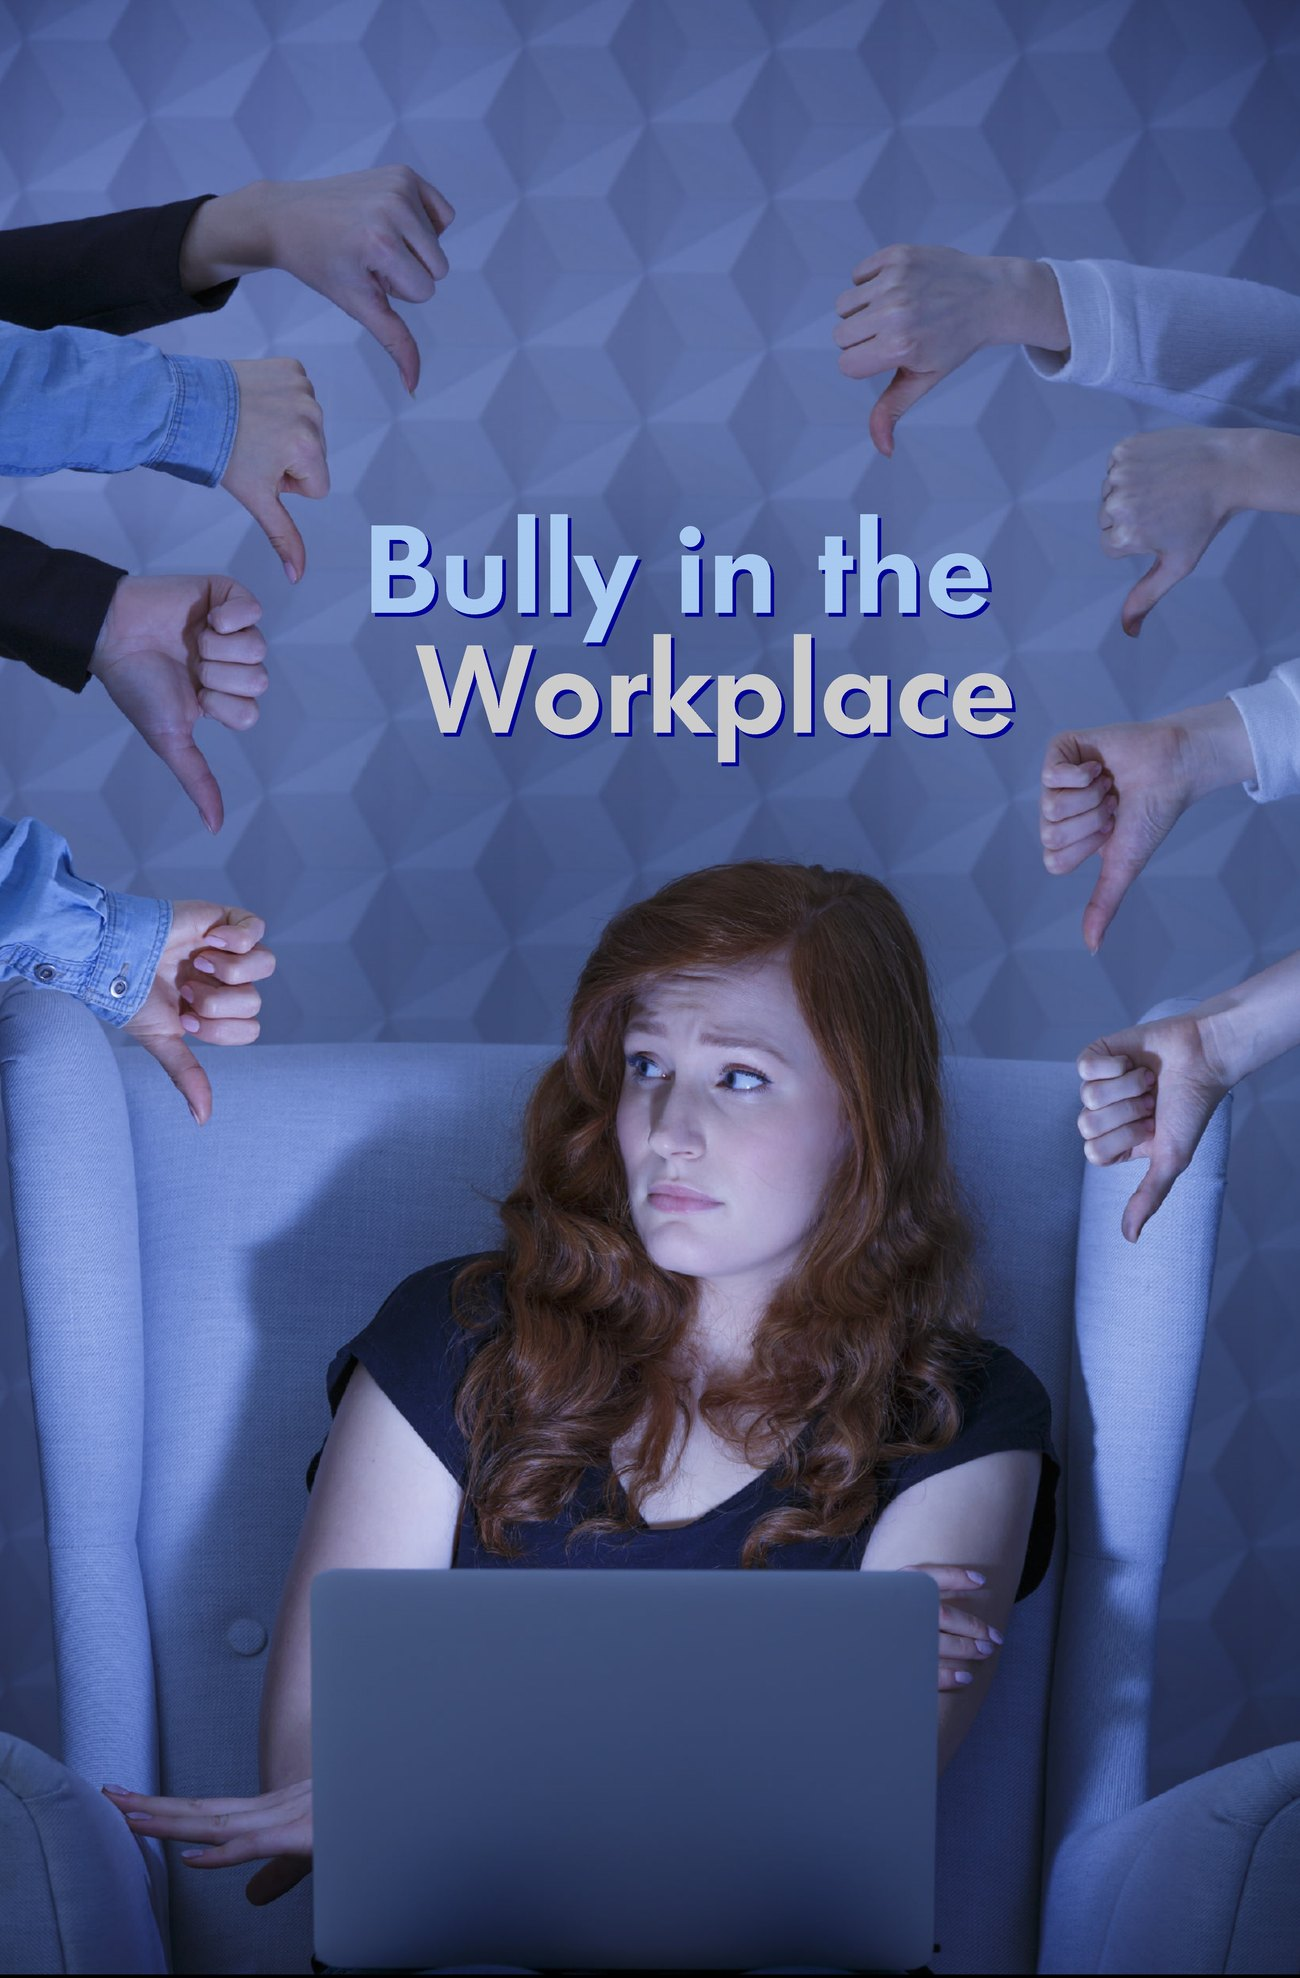 L7048 - Bully in the Workplace